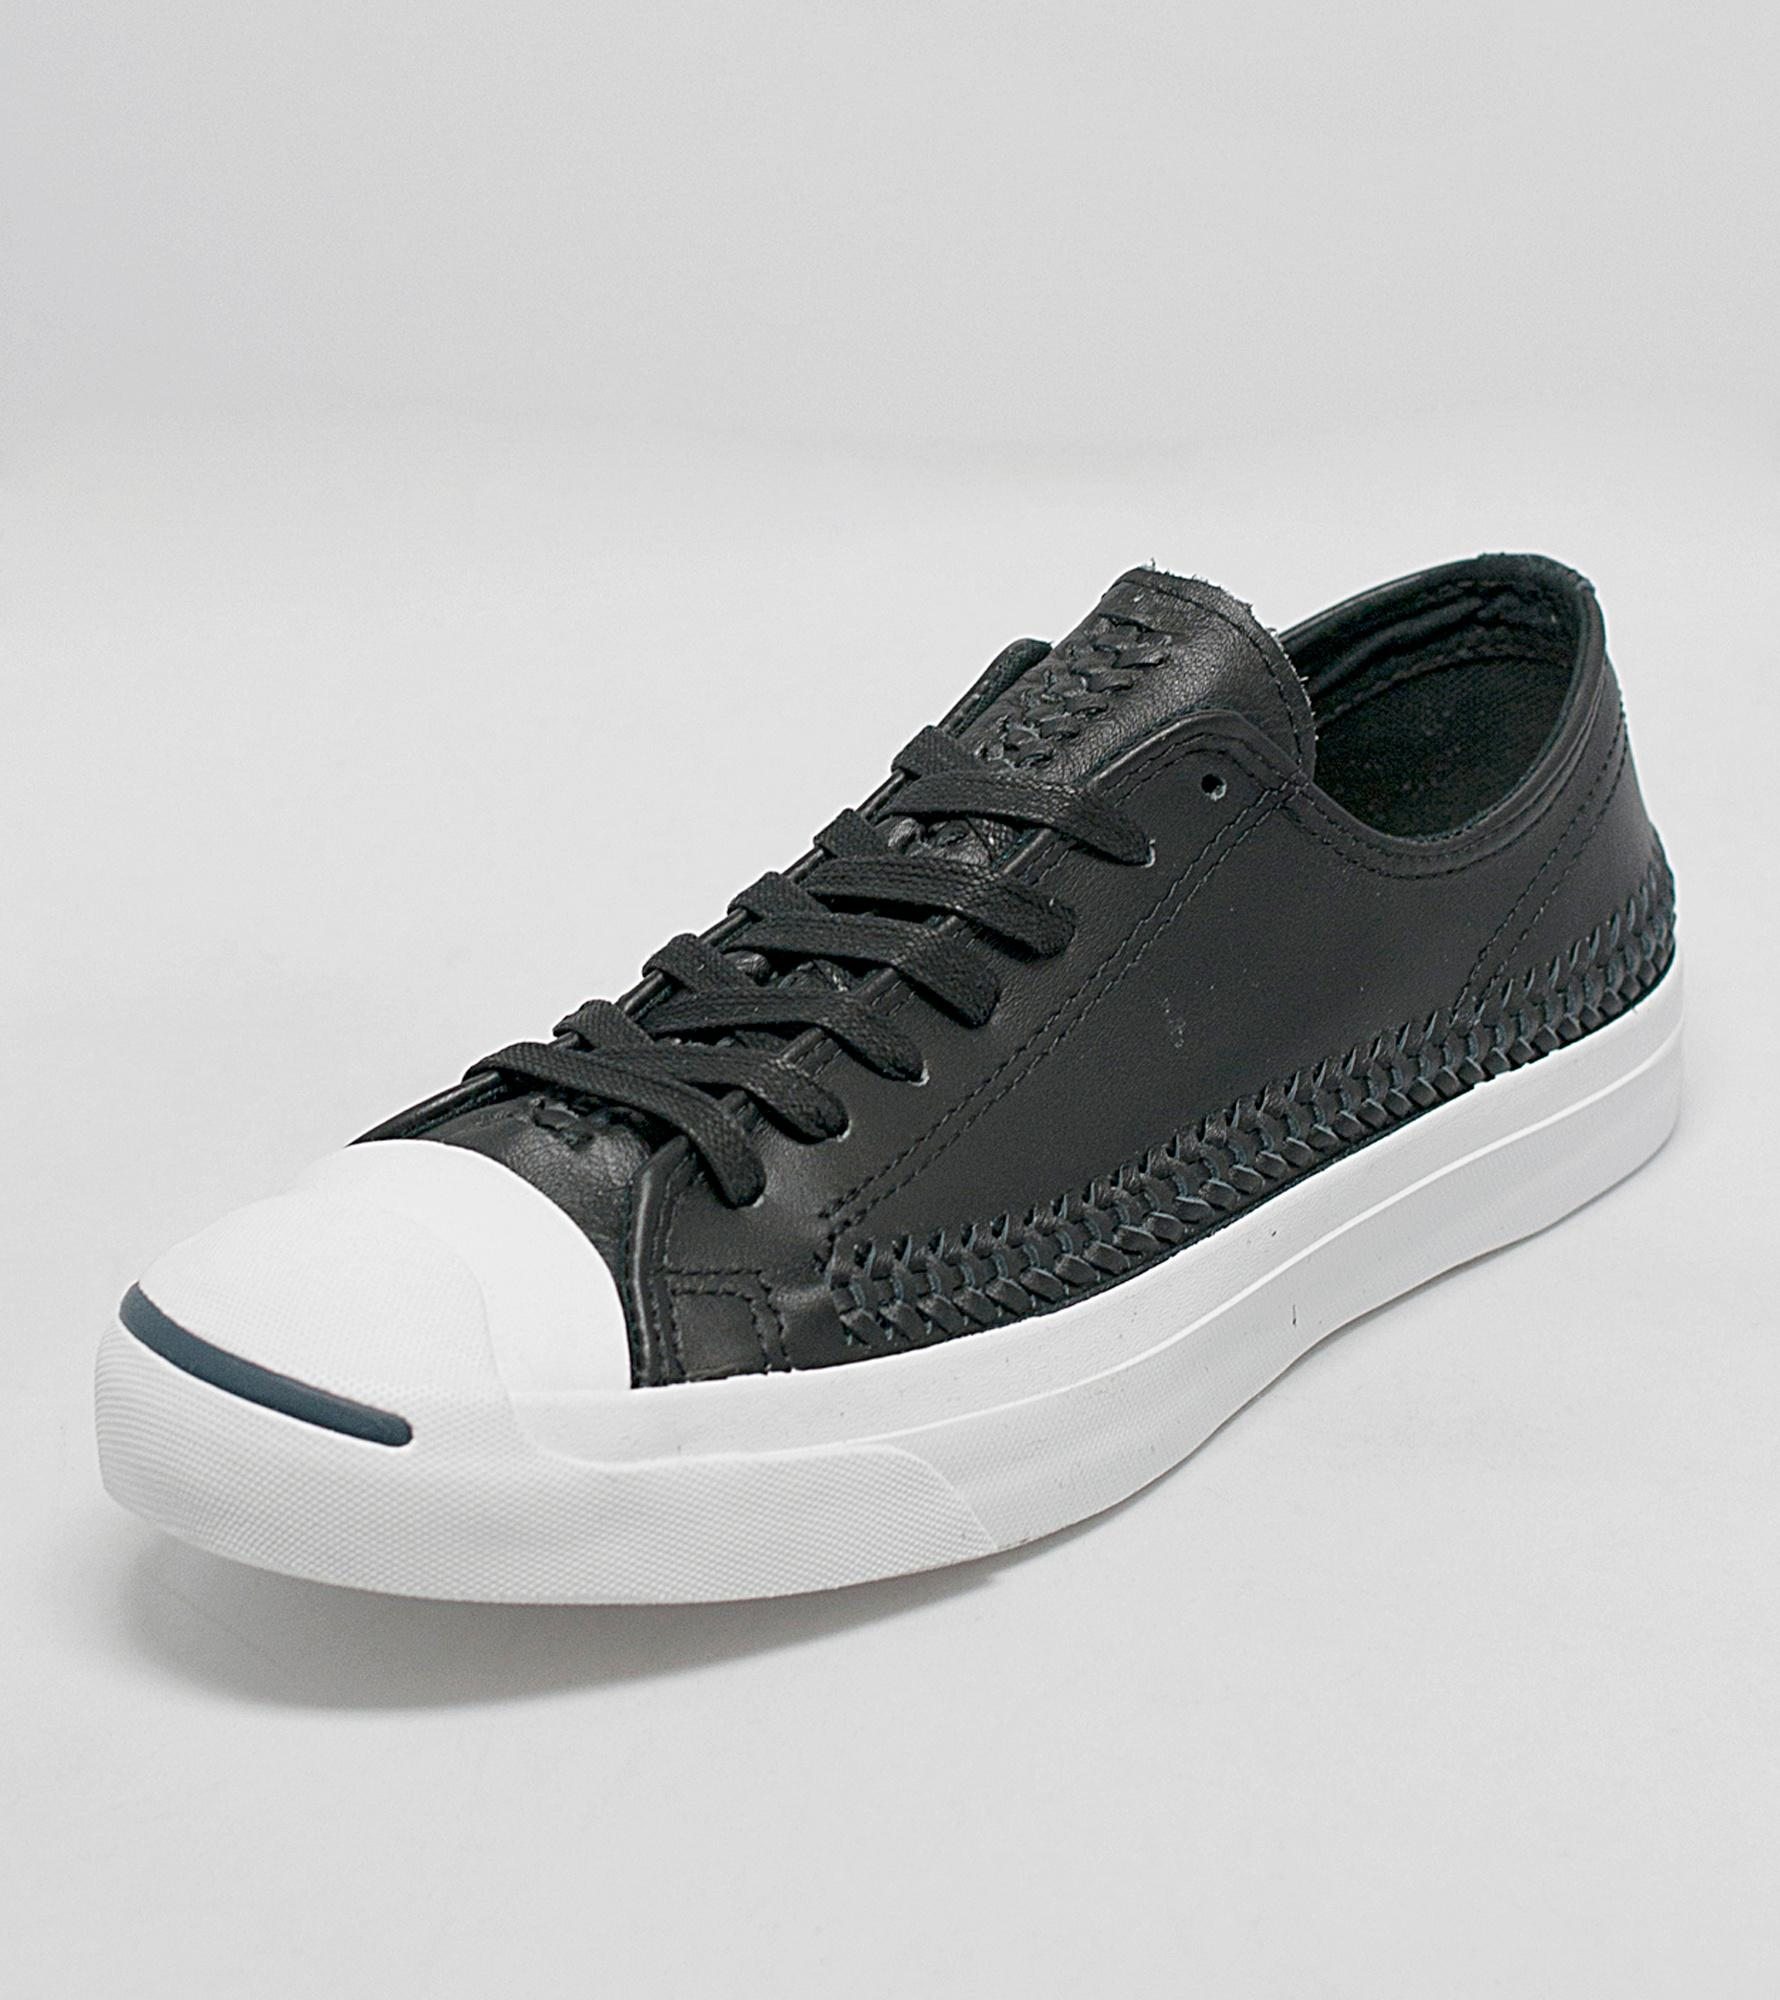 Converse Jack Purcell Signature Perforated Leather Size